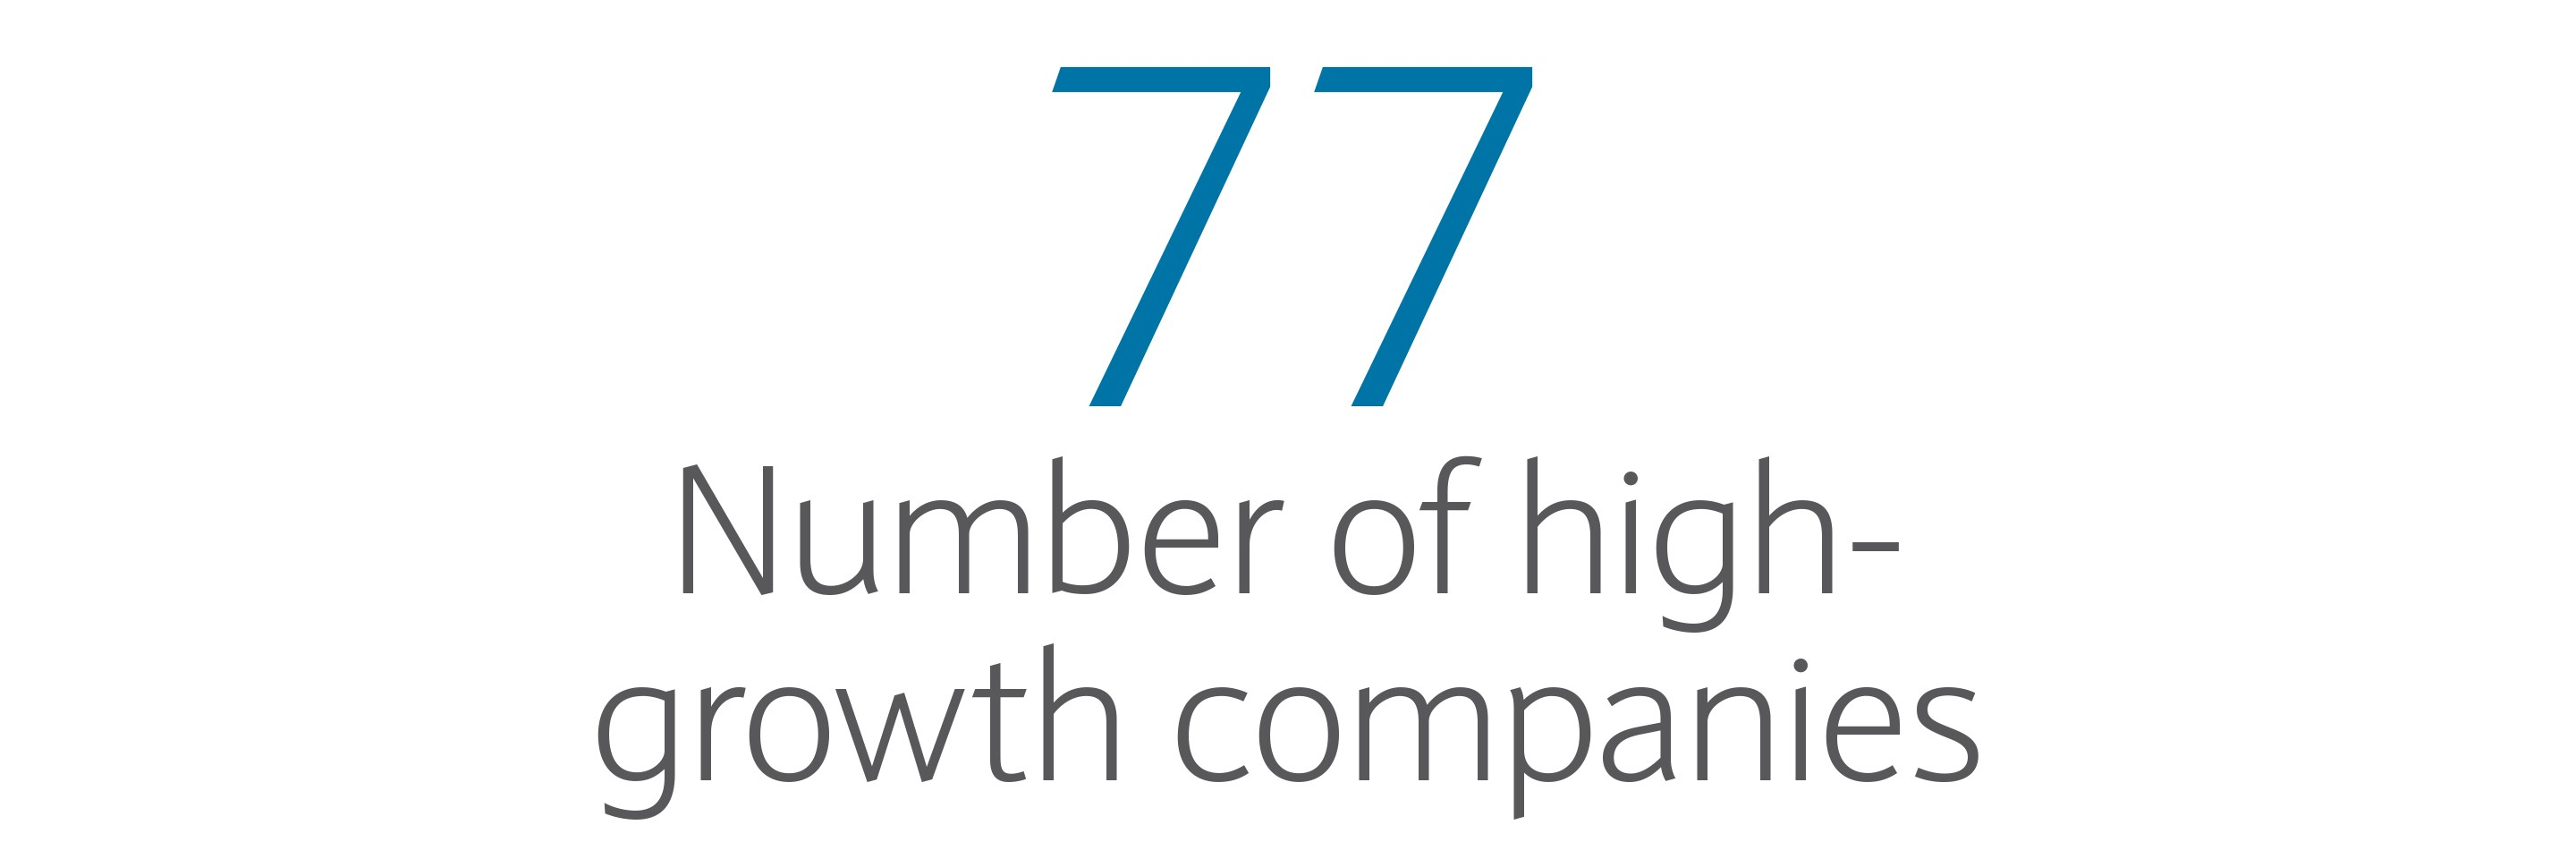 77: Number of high-growth companies